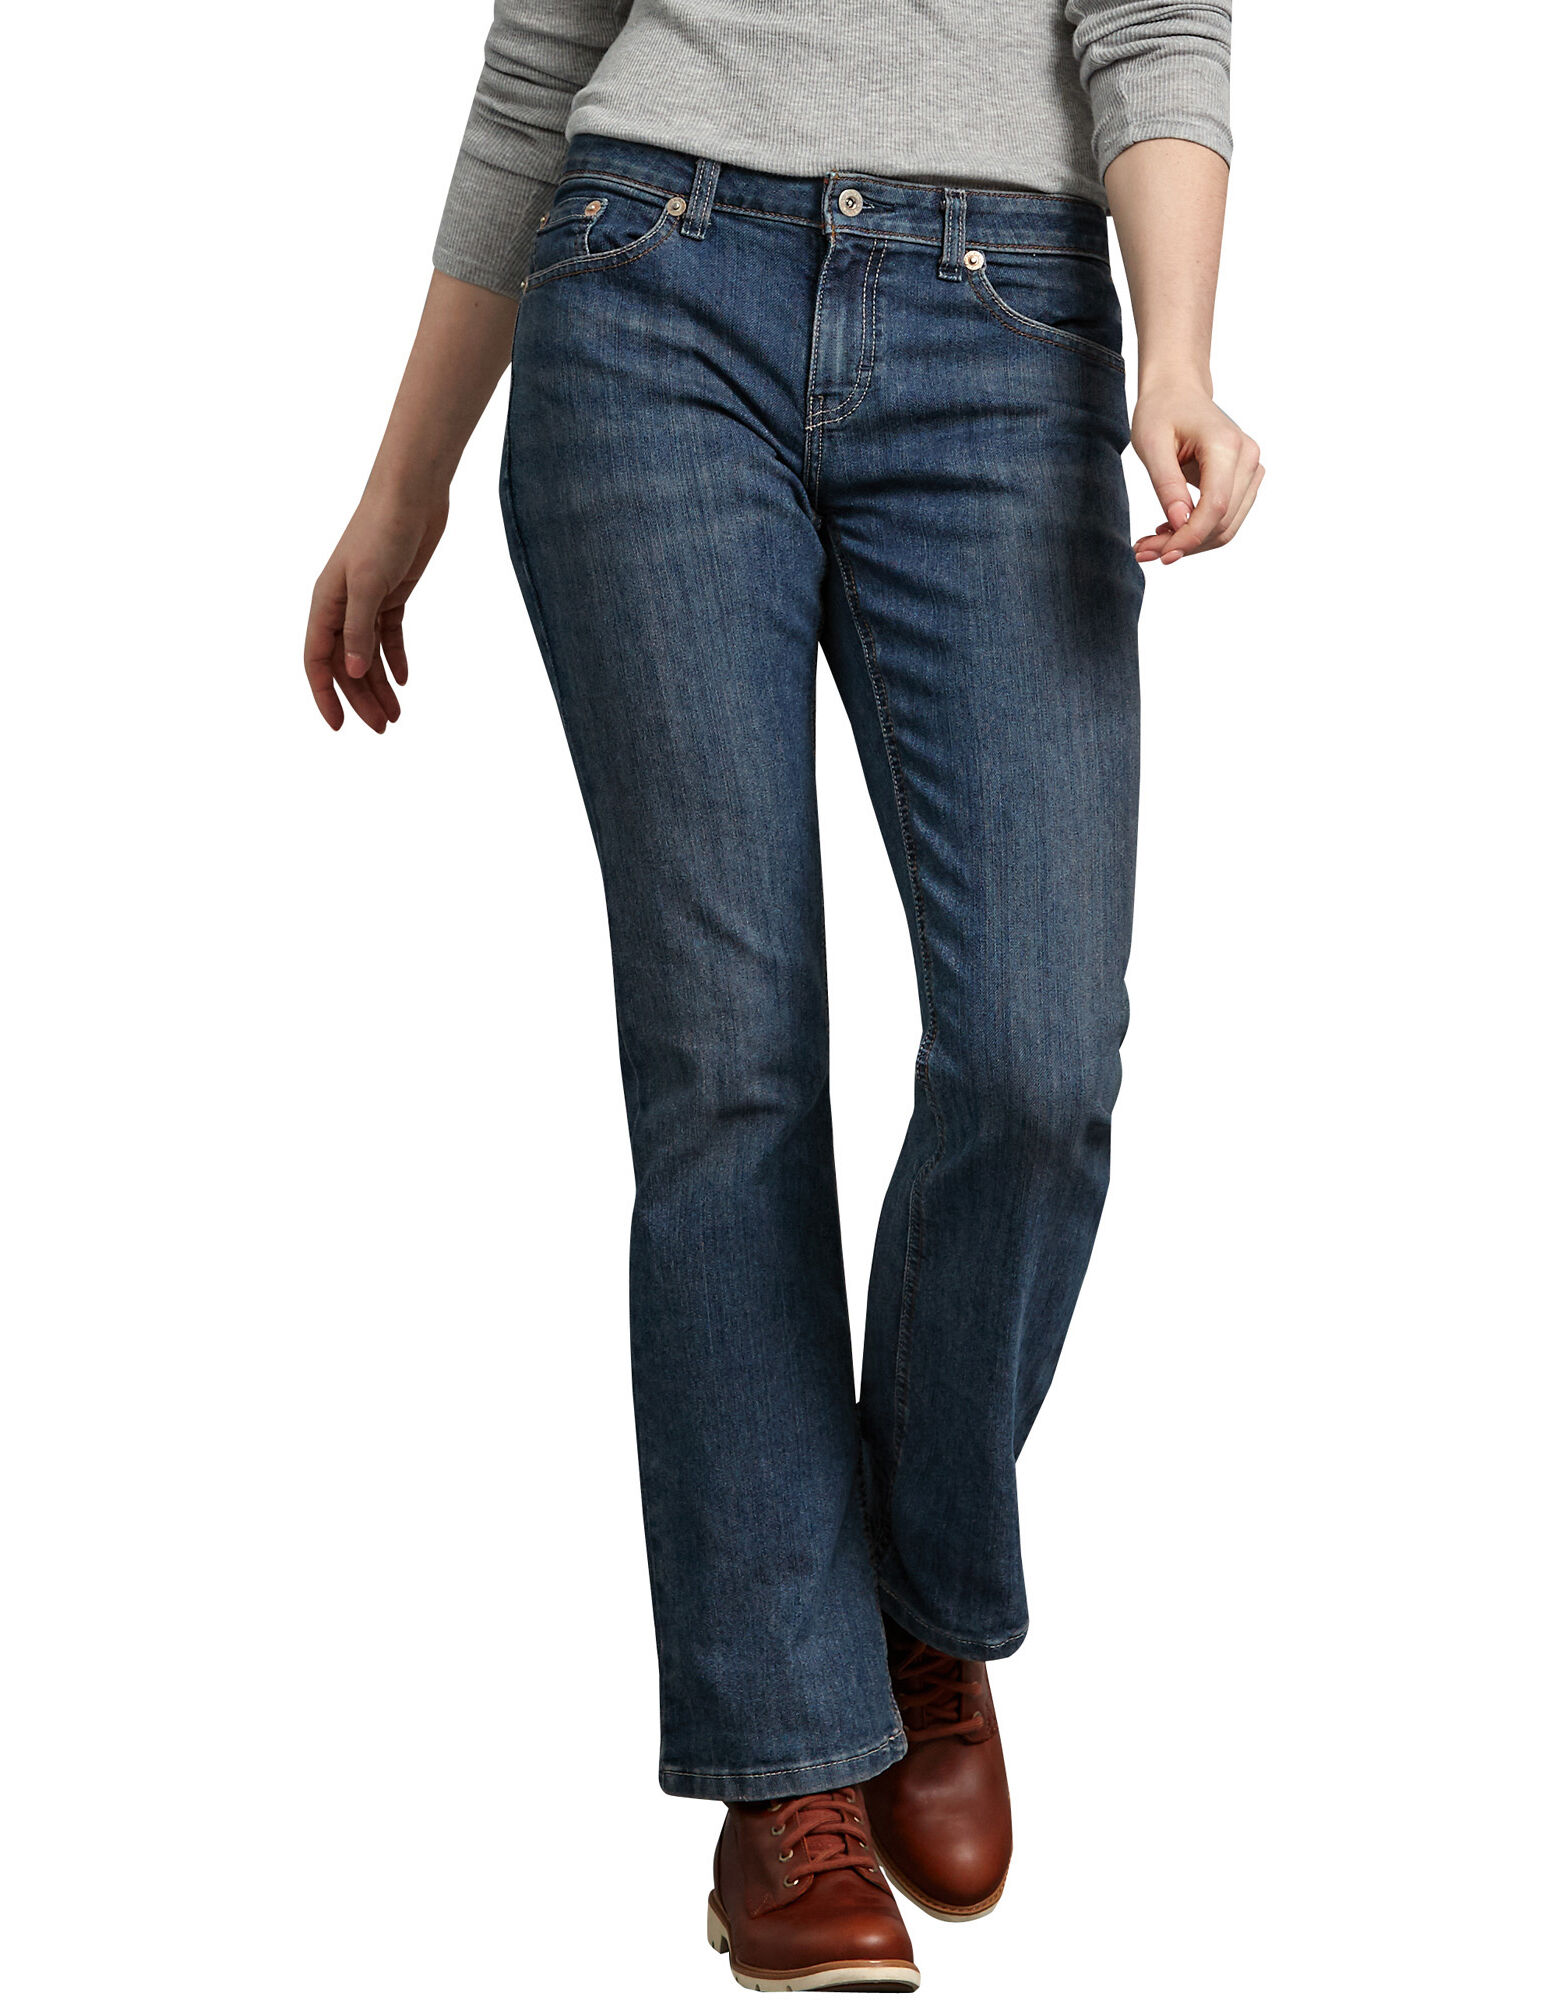 Relaxed Fit Jeans For Women fVIbWEK9